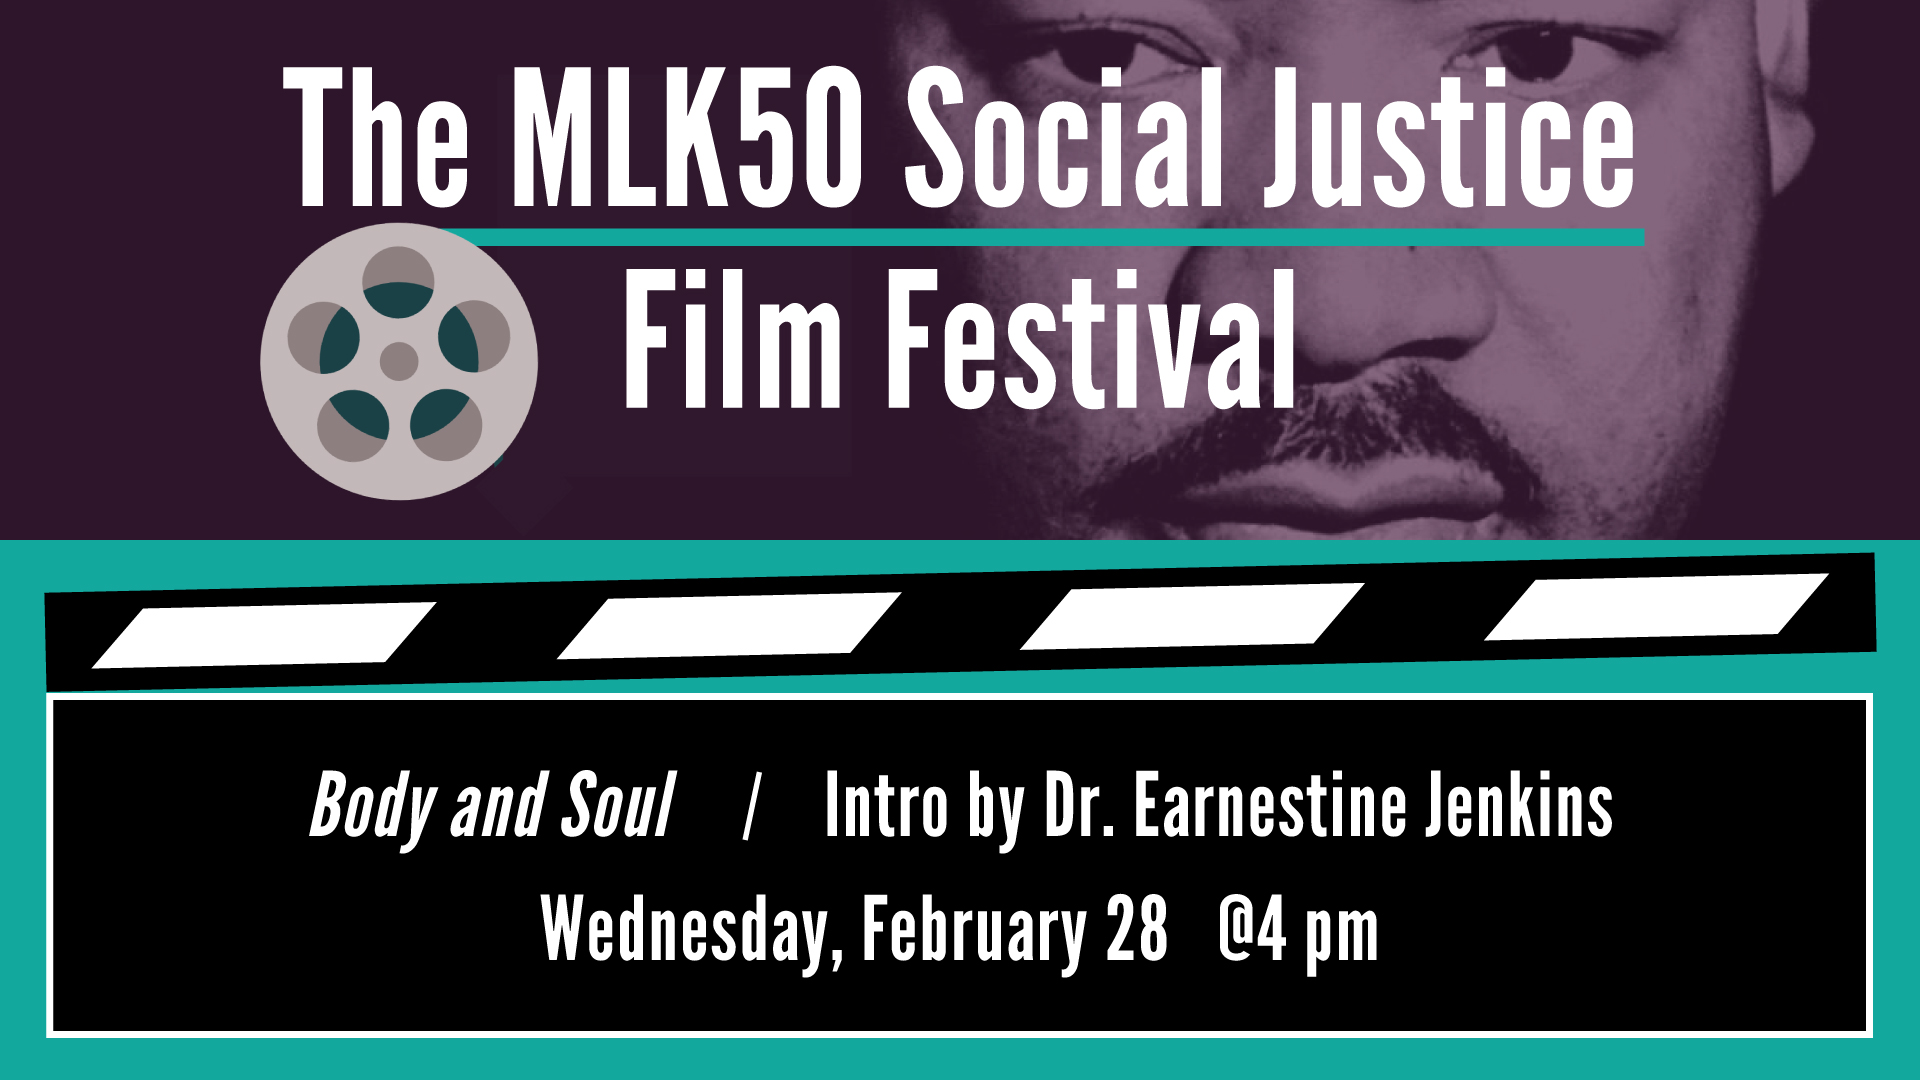 MLK50 Film Festival: Body and Soul